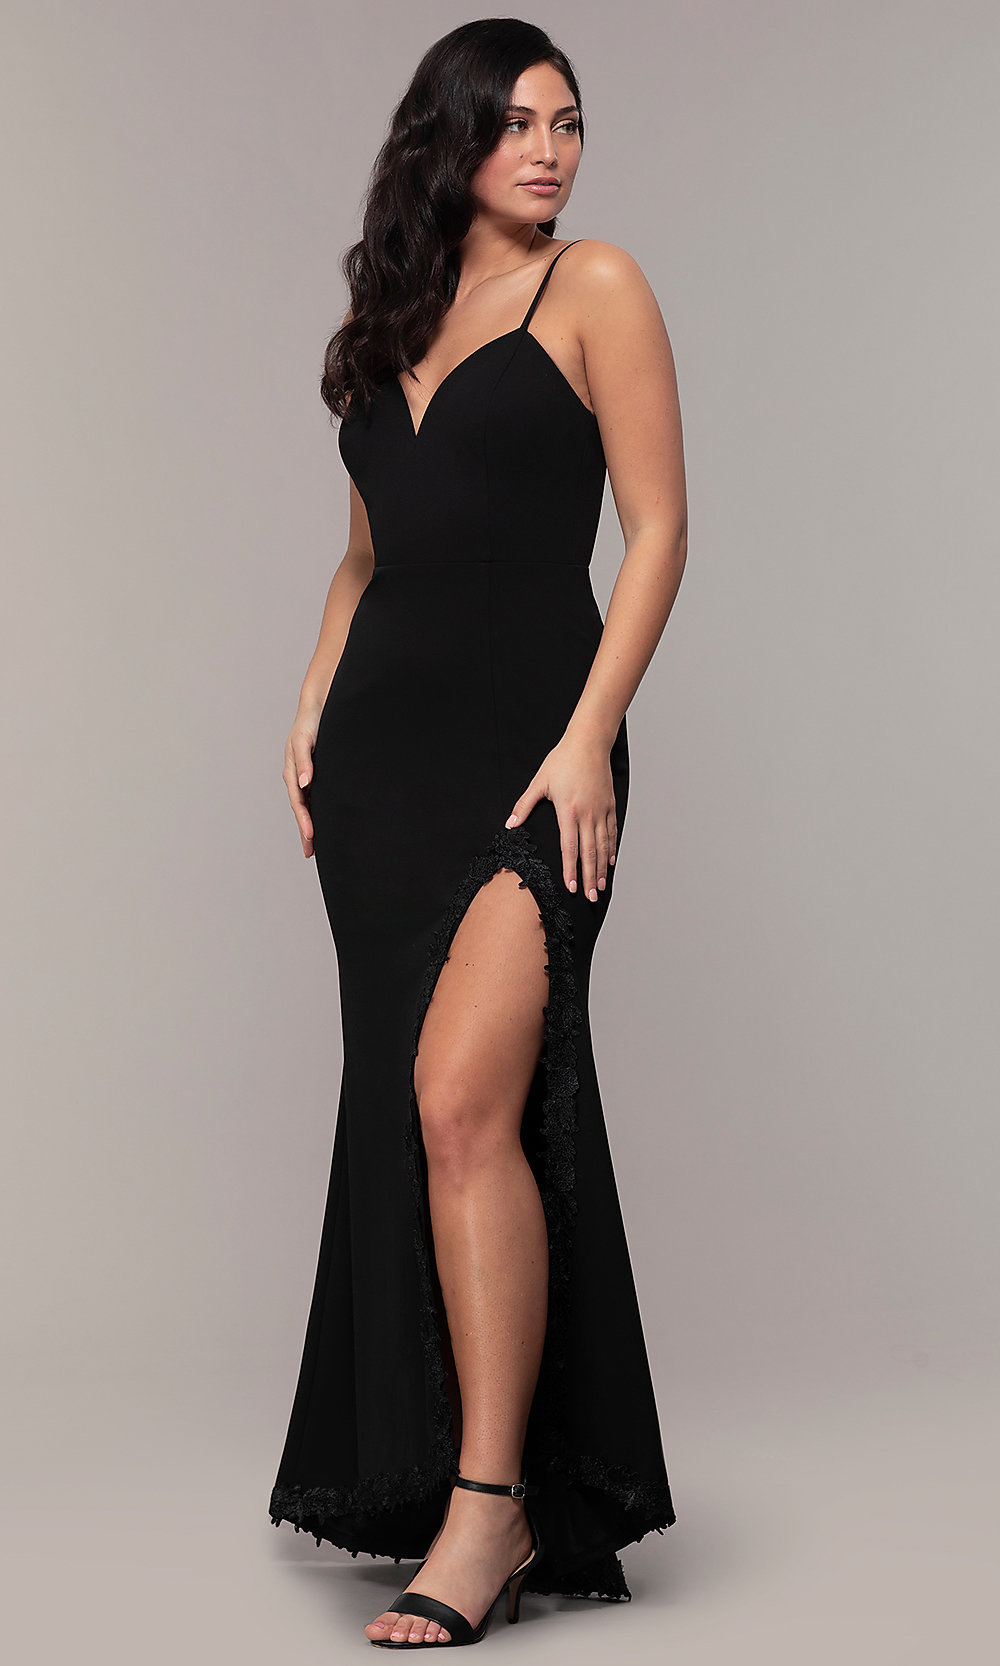 2a020a6ca99 Simply Sweetheart Long Black Prom Dress - PromGirl